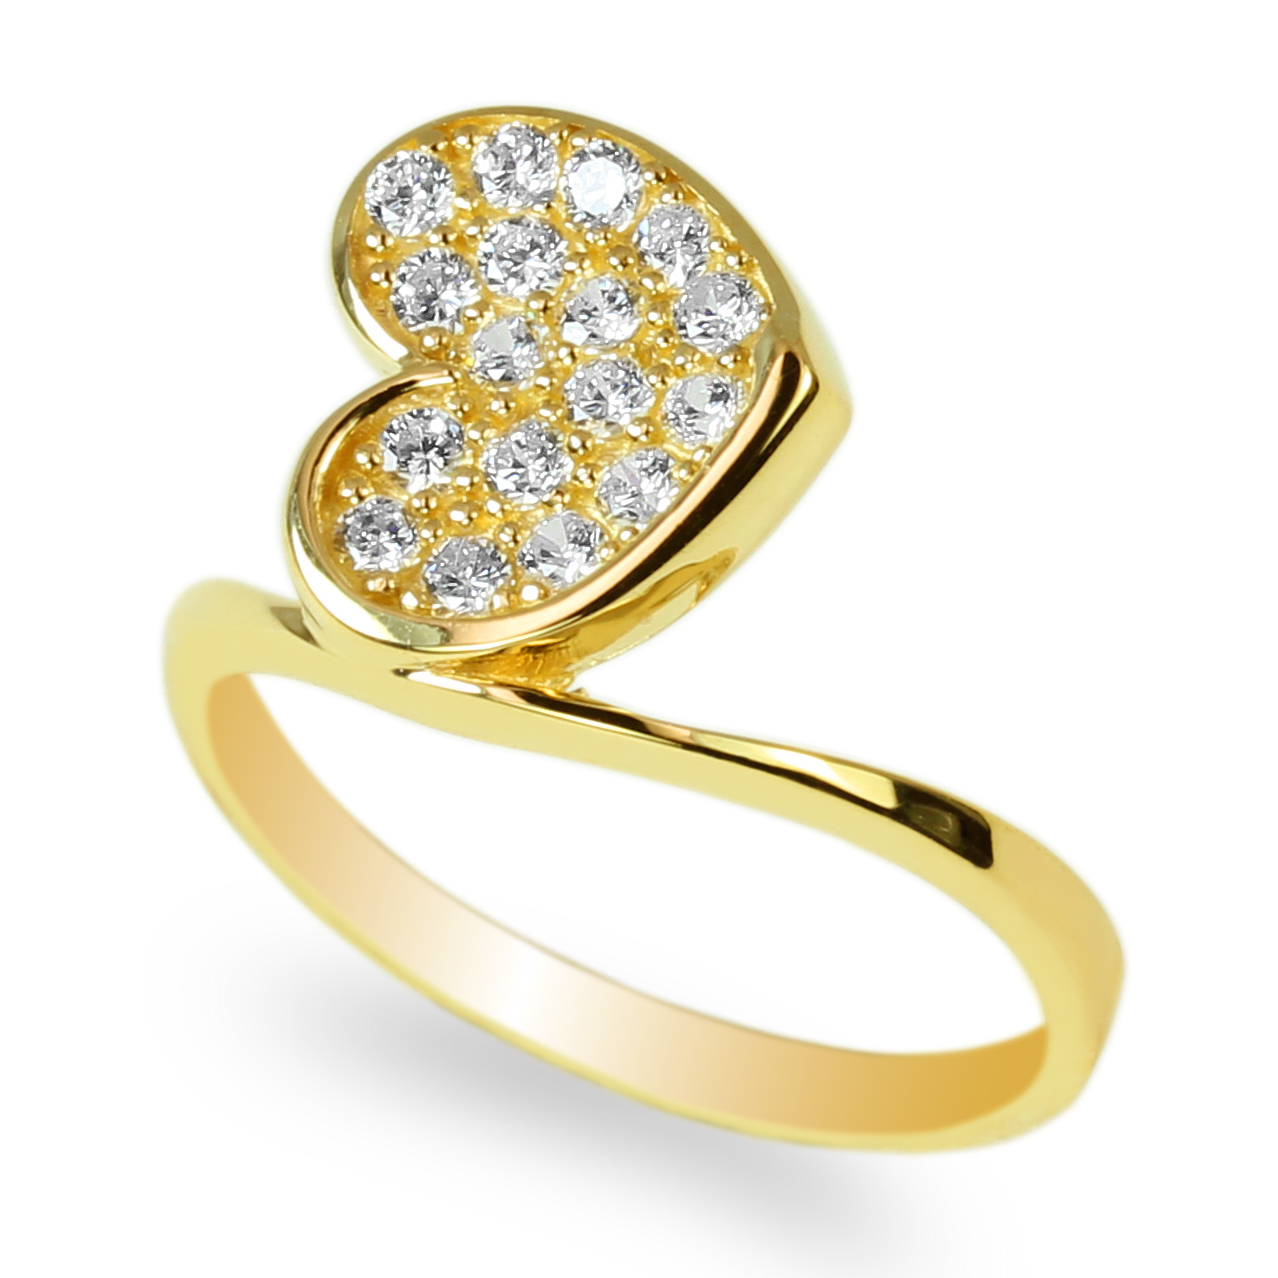 JamesJenny Ladies 14K Yellow Gold Heart Shaped Luxury Solid Ring with Round CZ Embedded Size 4-10